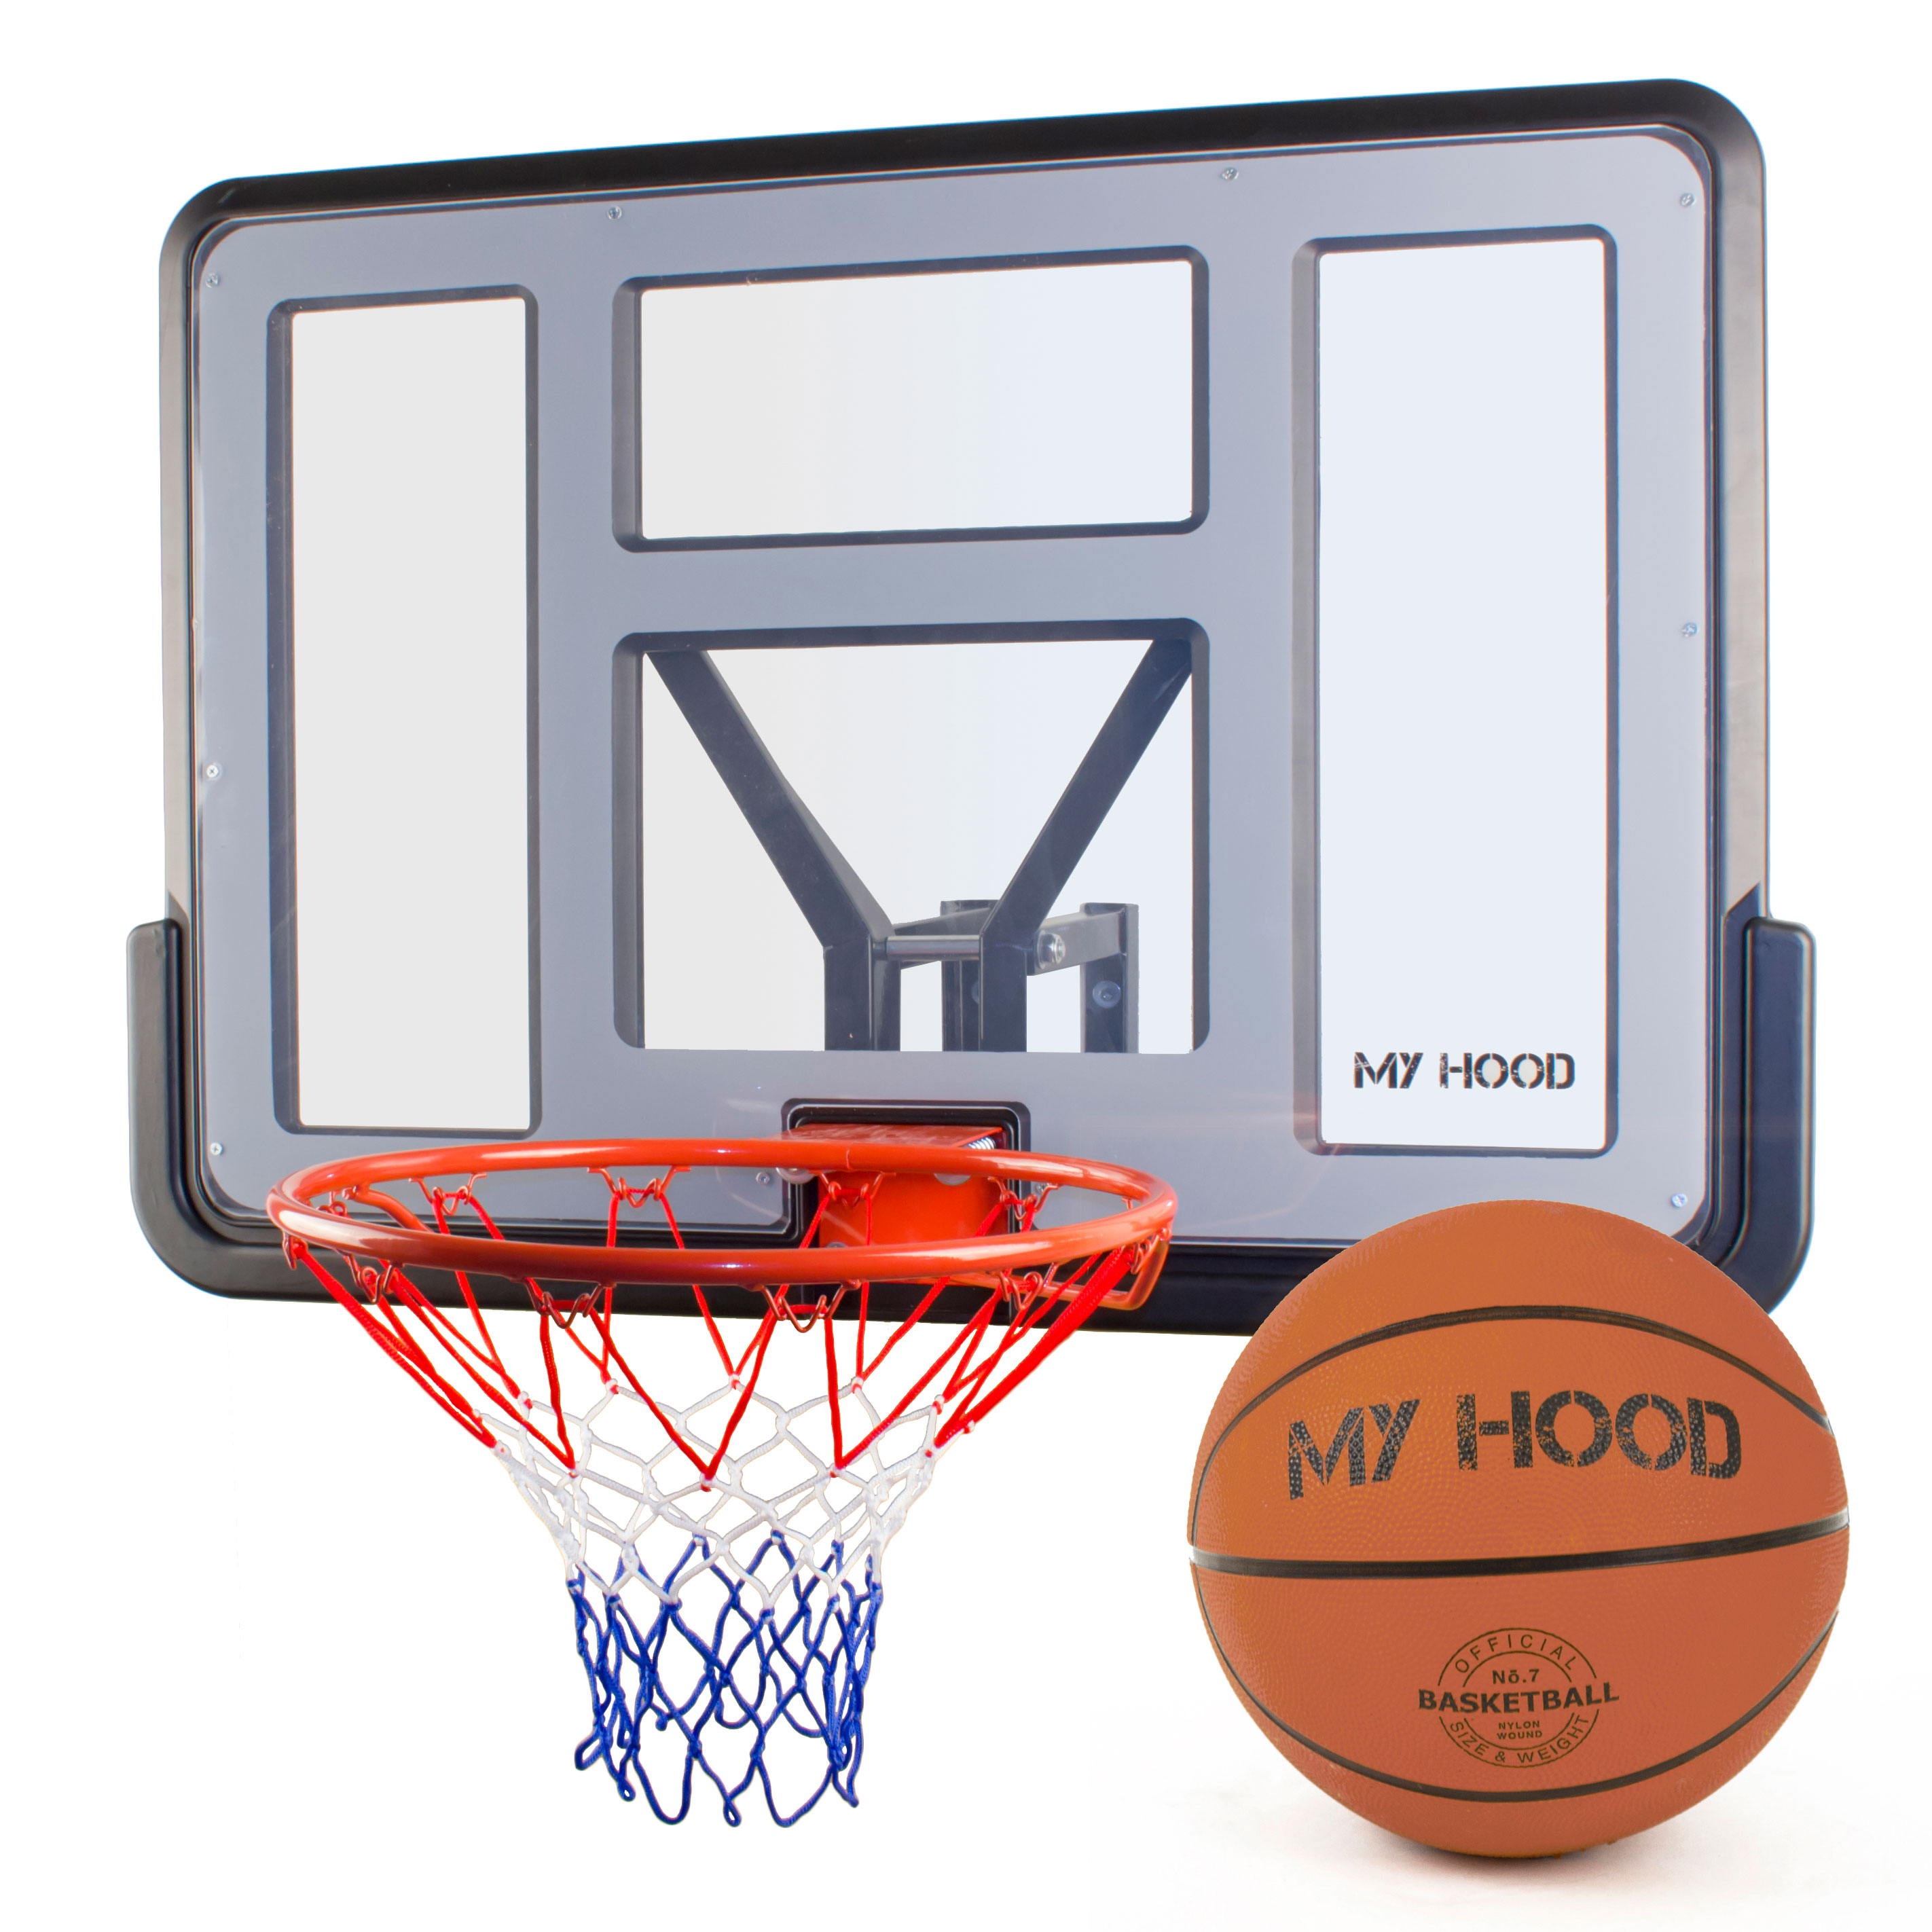 My Hood basketkurv på plade